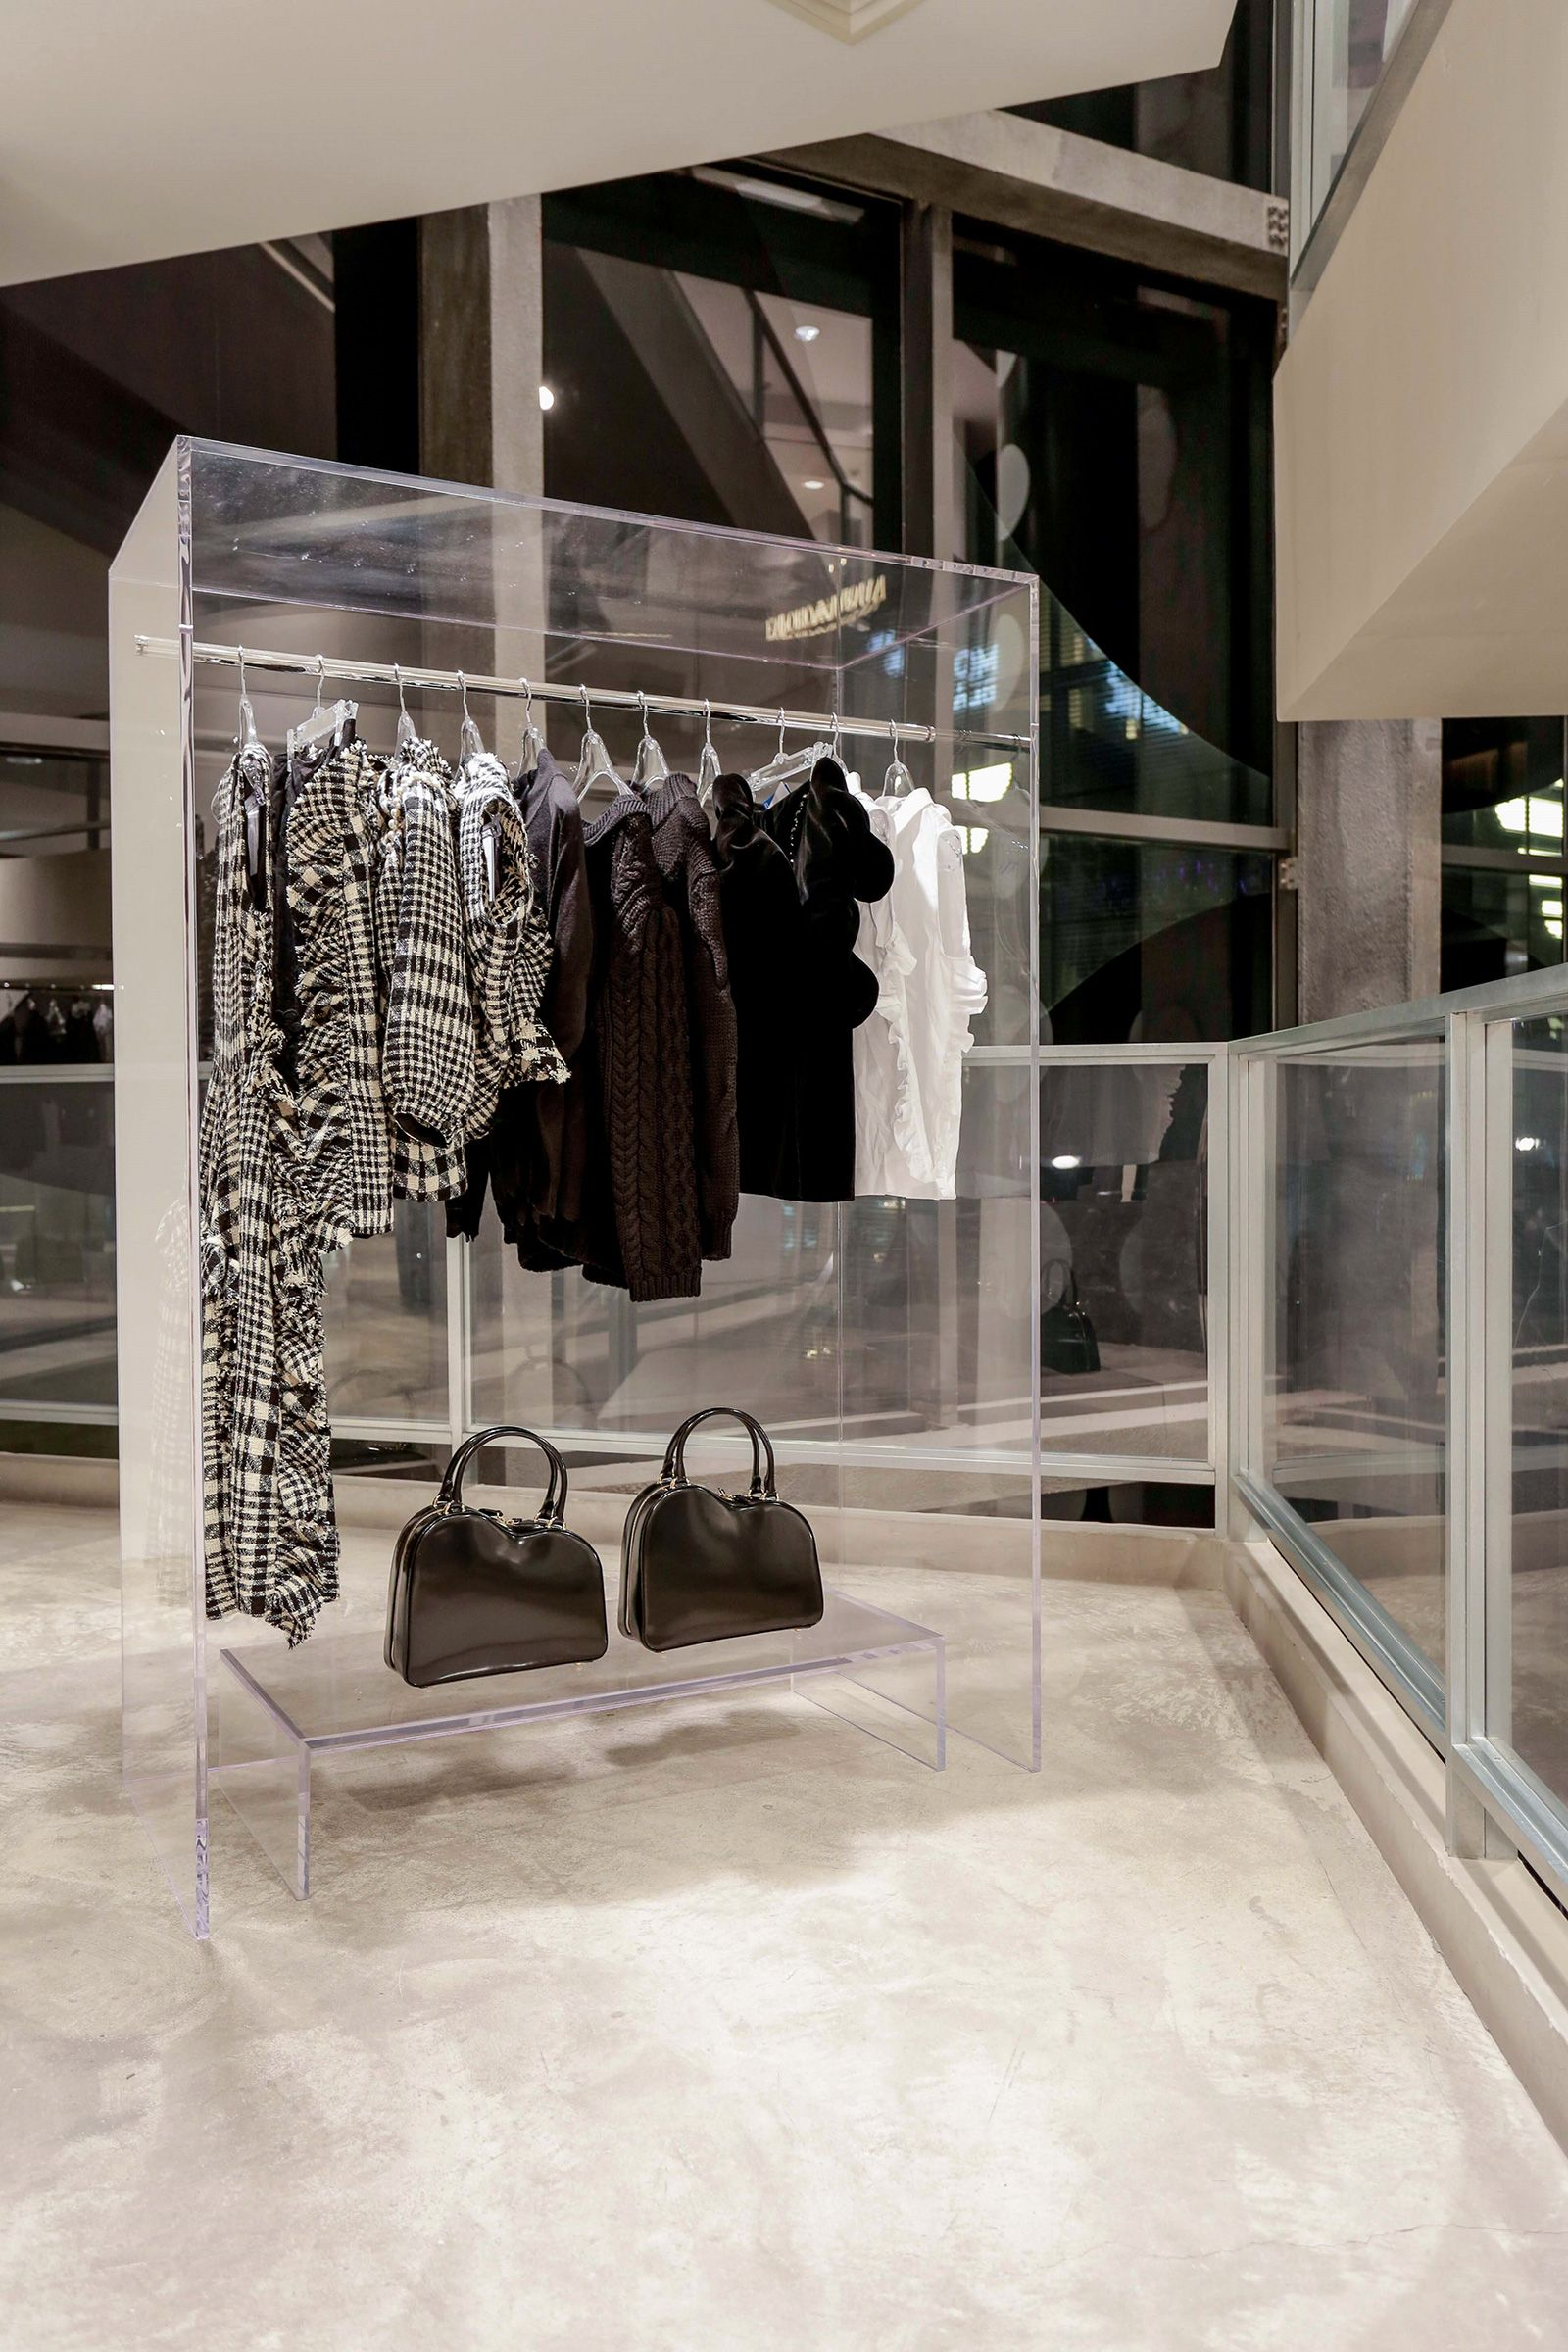 Dover street market store new york city retail design blog - New Spaces At I T Beijing Market Beijing Doverstreetmarket Com Dover Street Marketretail Shopshop Interiorsbeijing Chinadoversretail Design